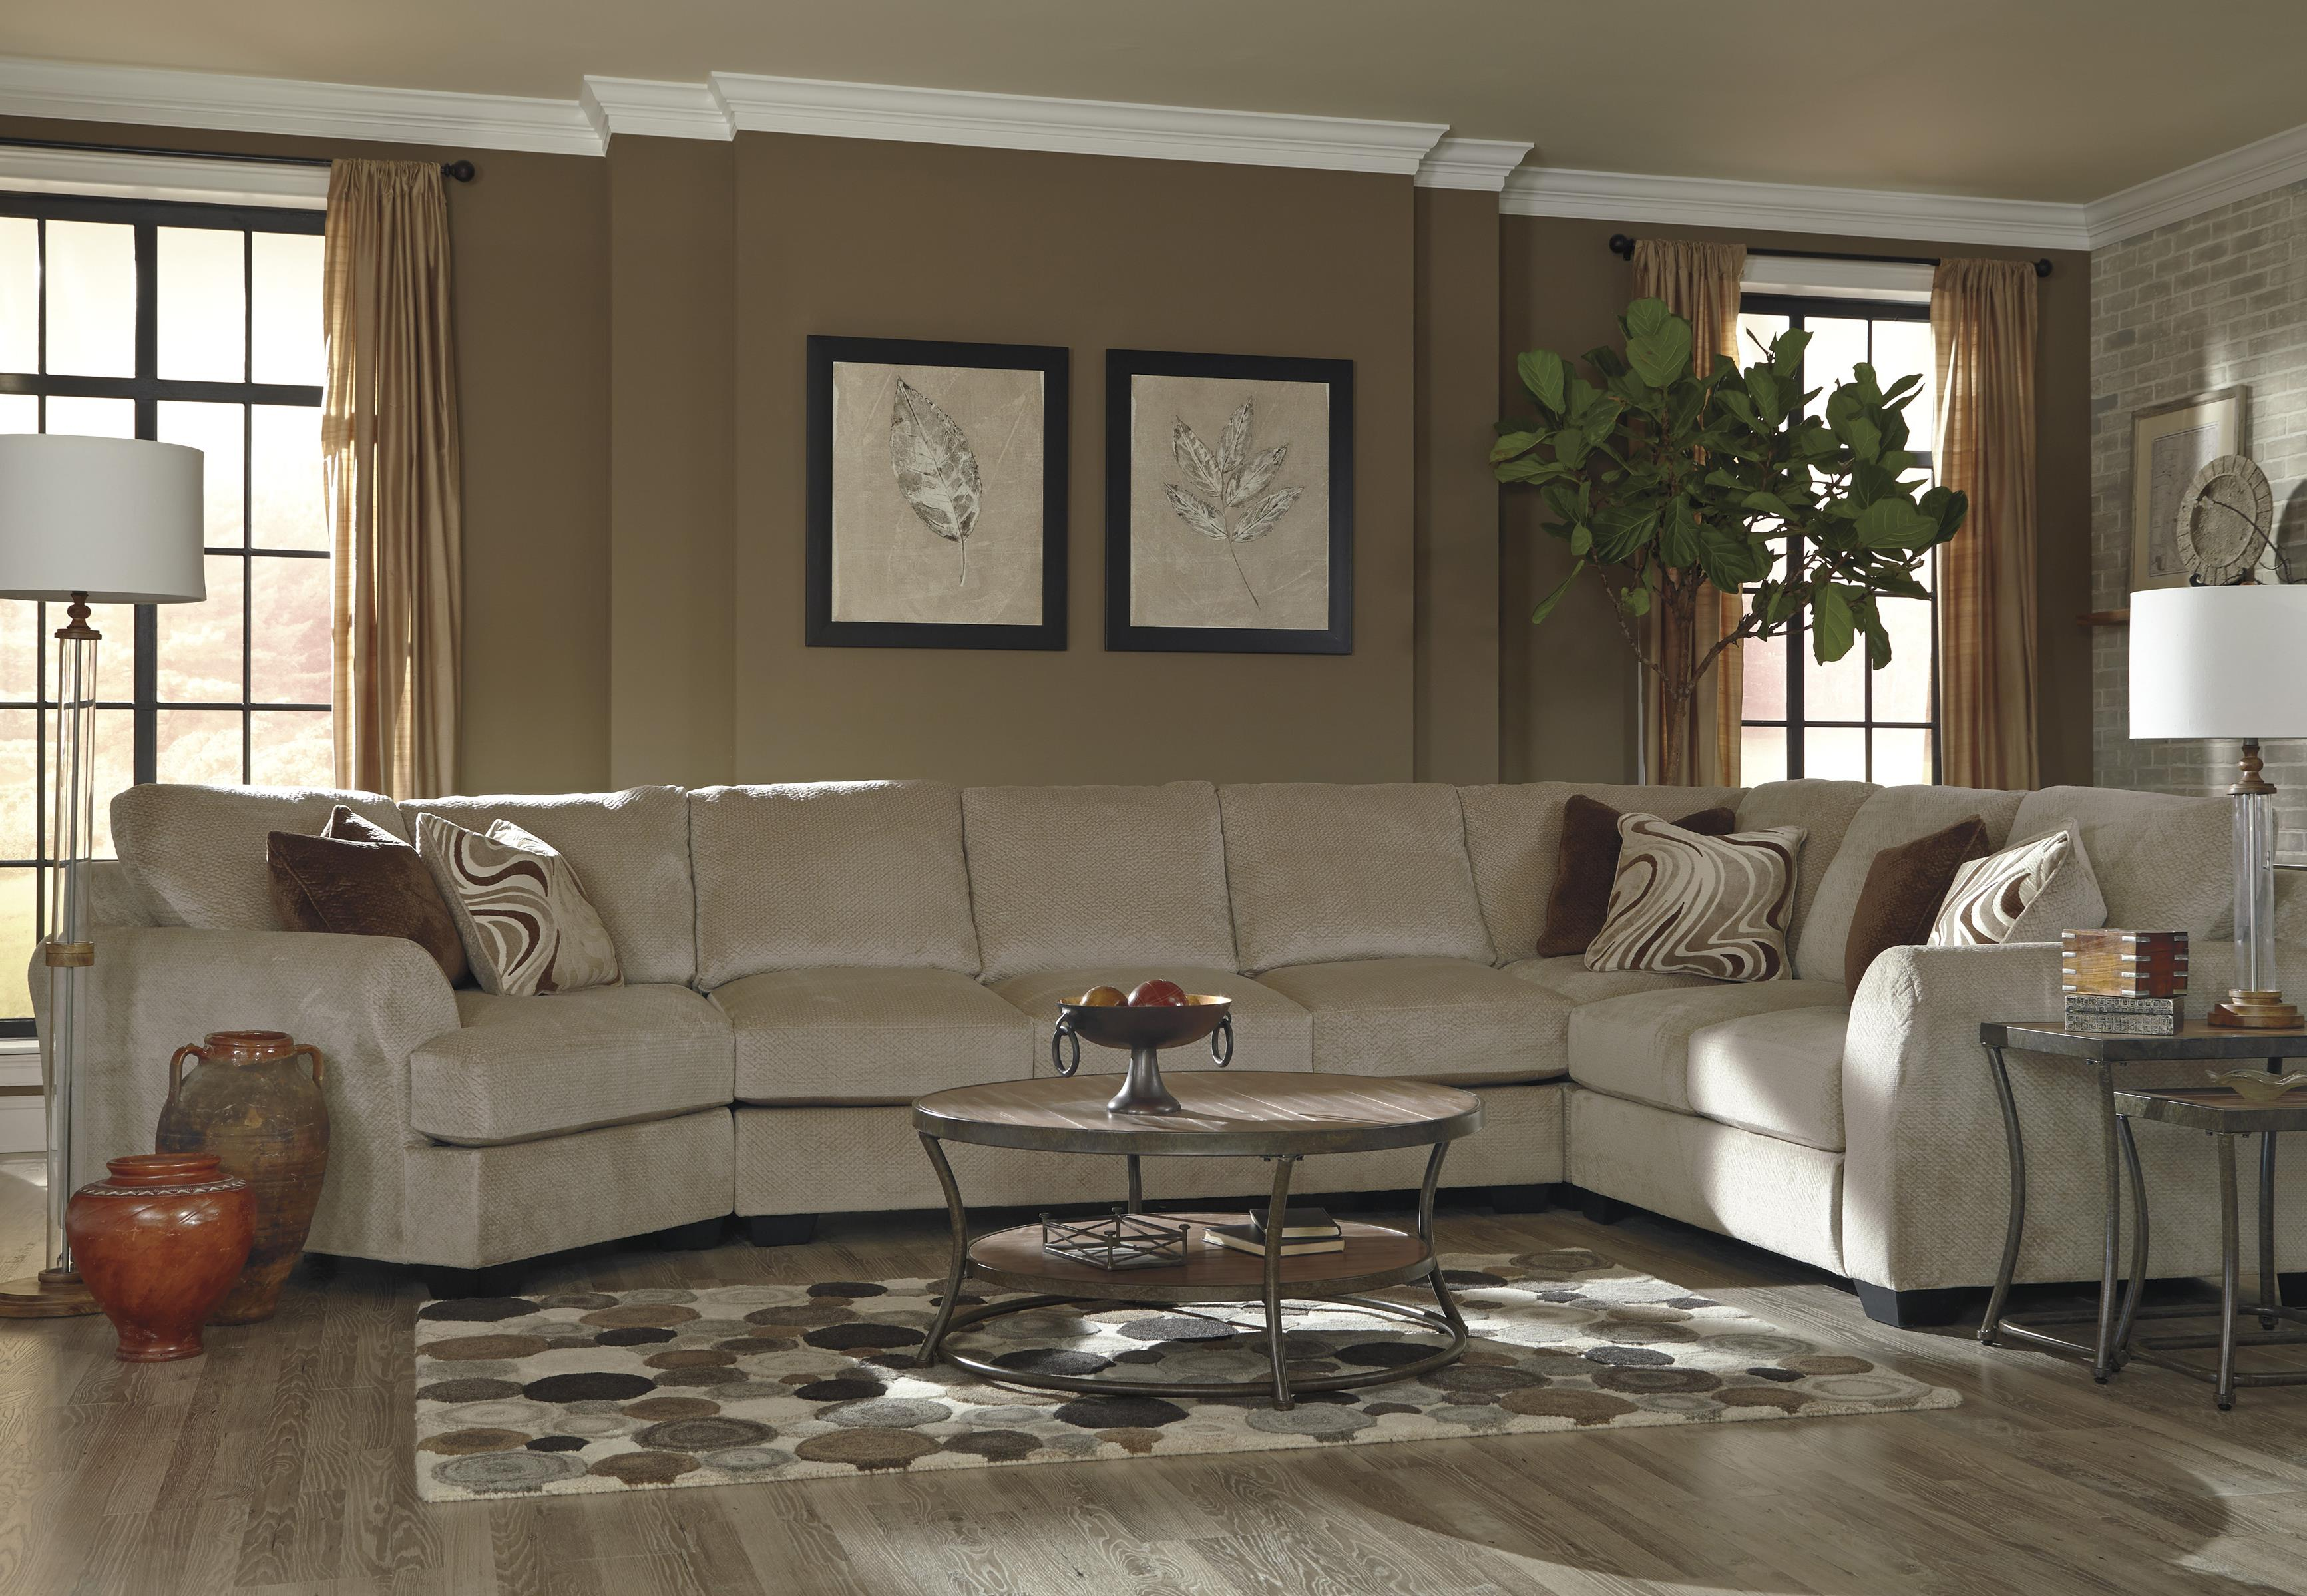 Benchcraft Hazes 4-Piece Sectional w/ Armless Sofa & Cuddler - Item Number: 6570176+99+77+56